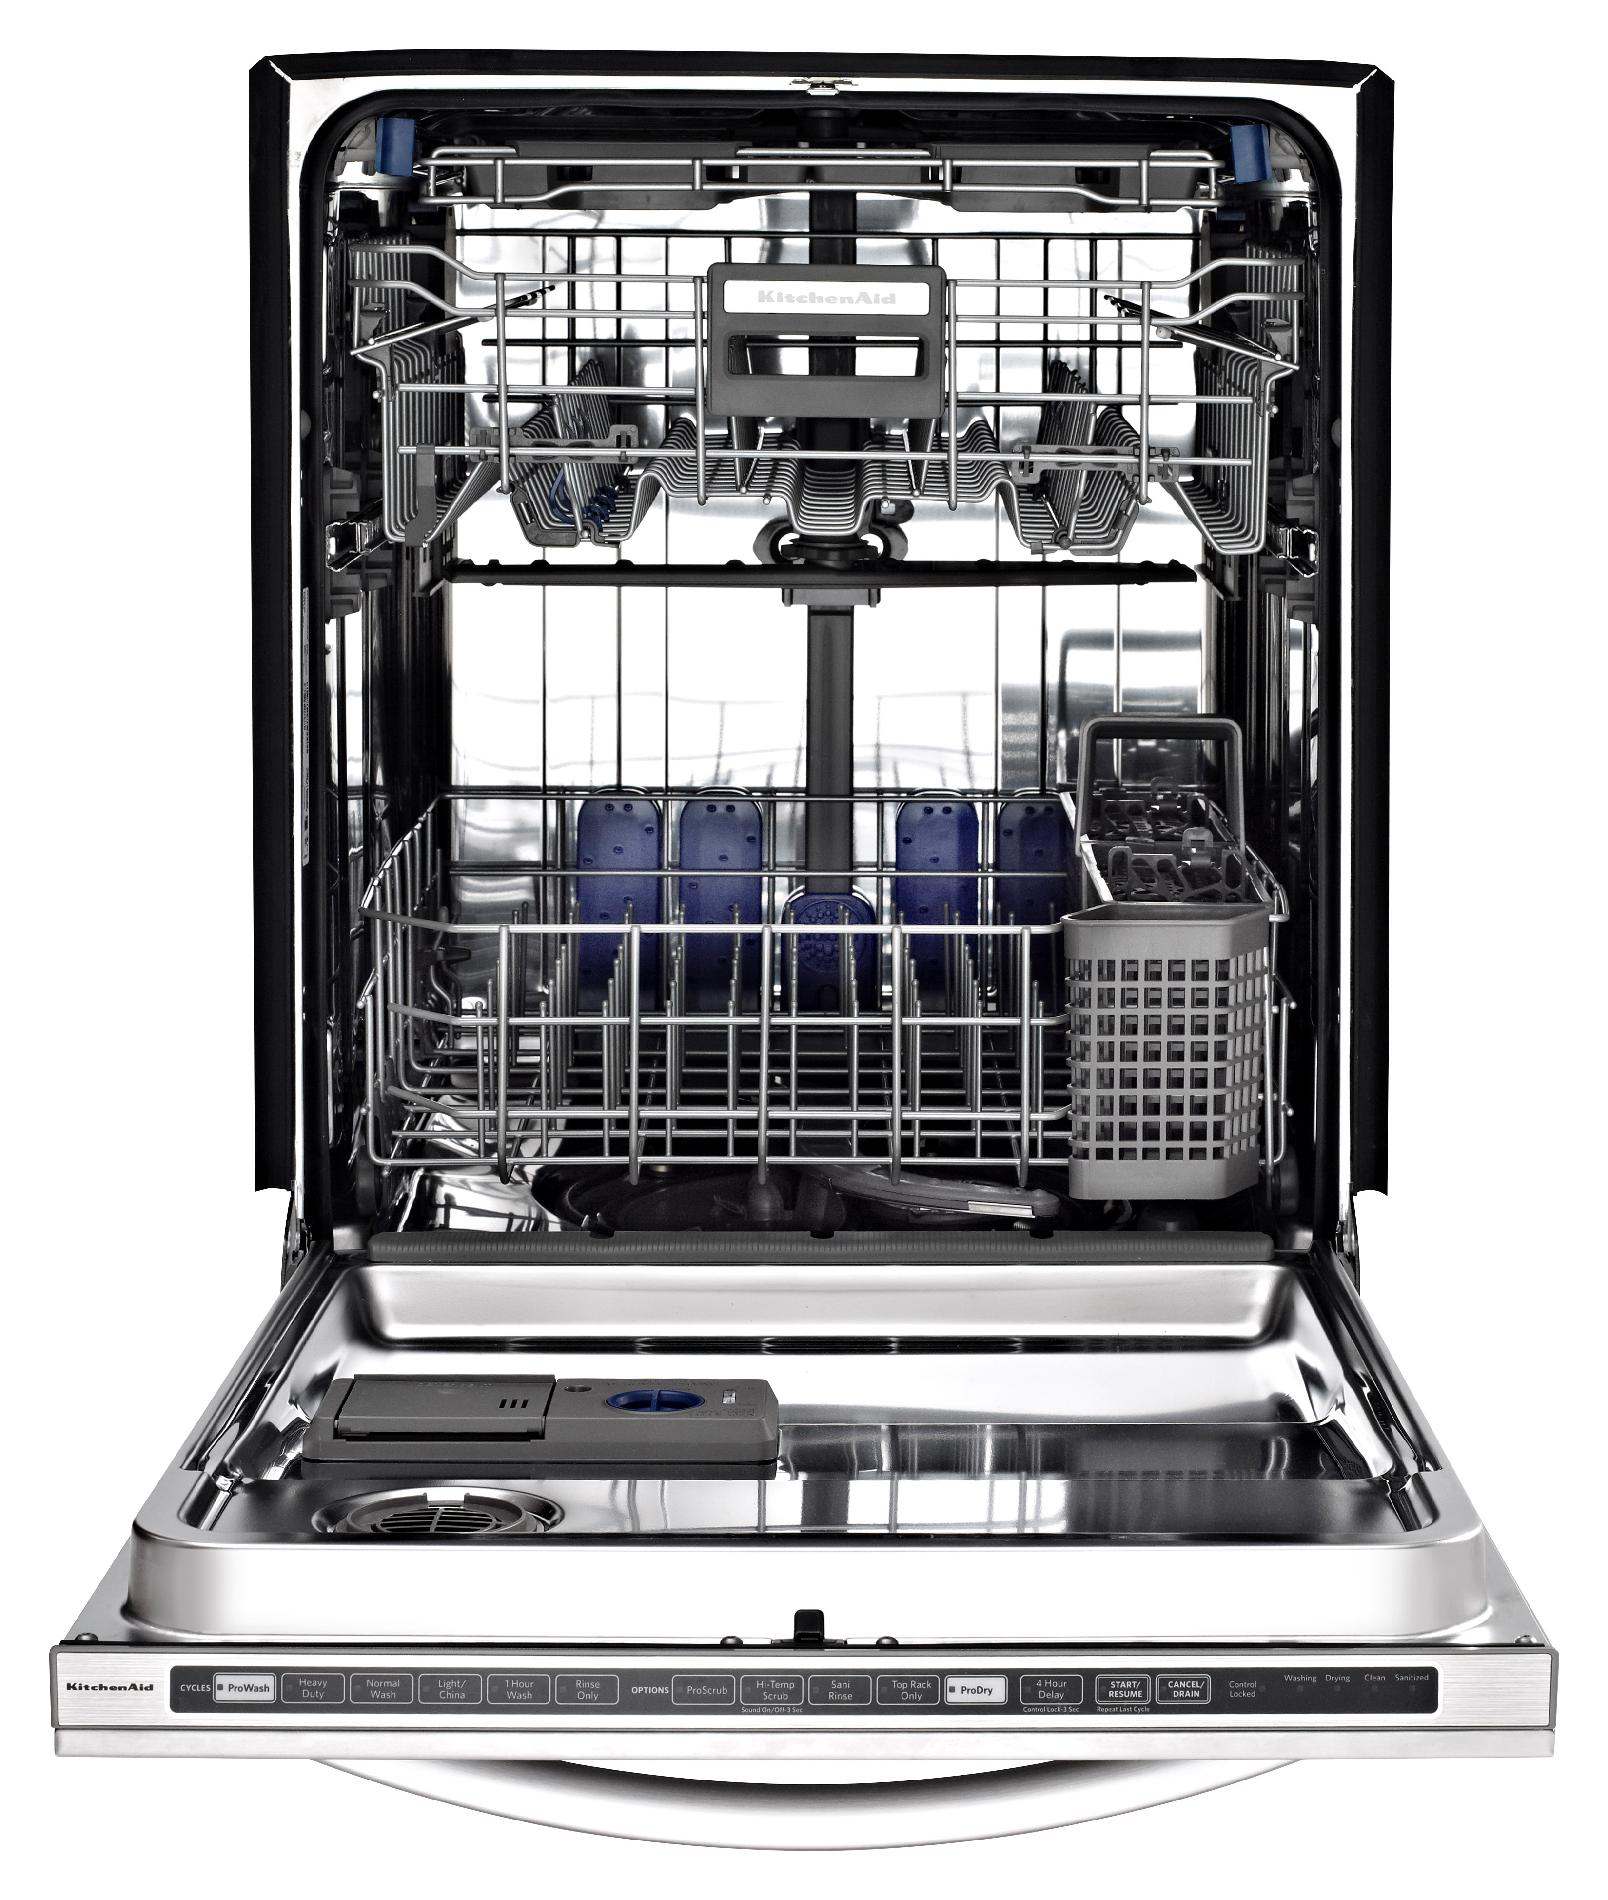 "KitchenAid 24"" Superba EQ Built-In Dishwasher - Black"